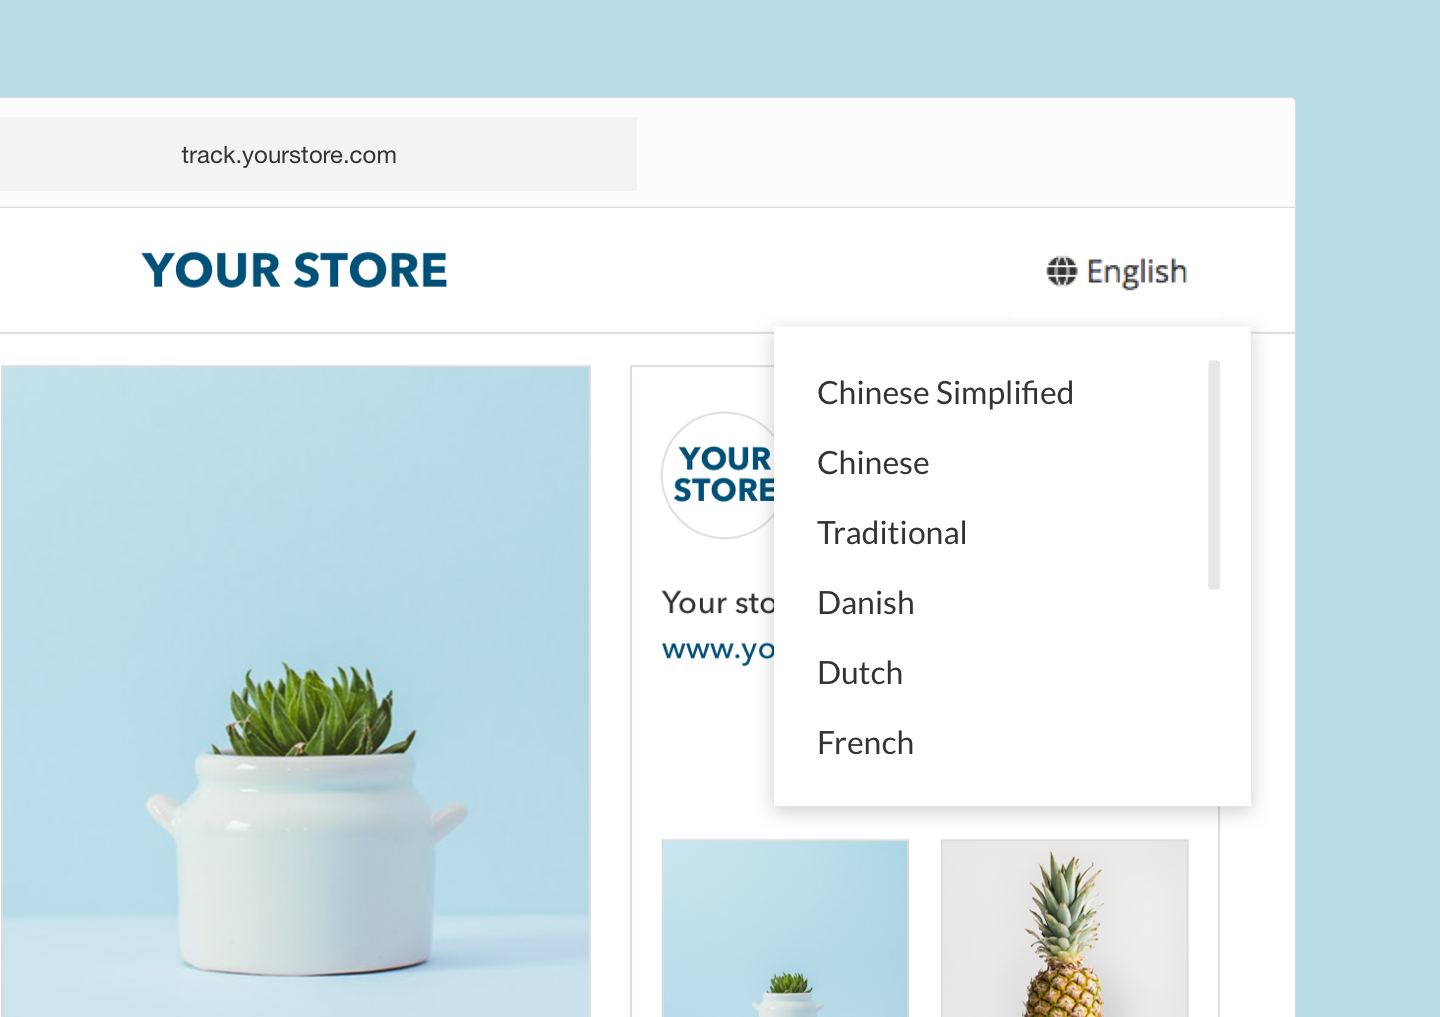 More Languages Supported on Branded Tracking Page